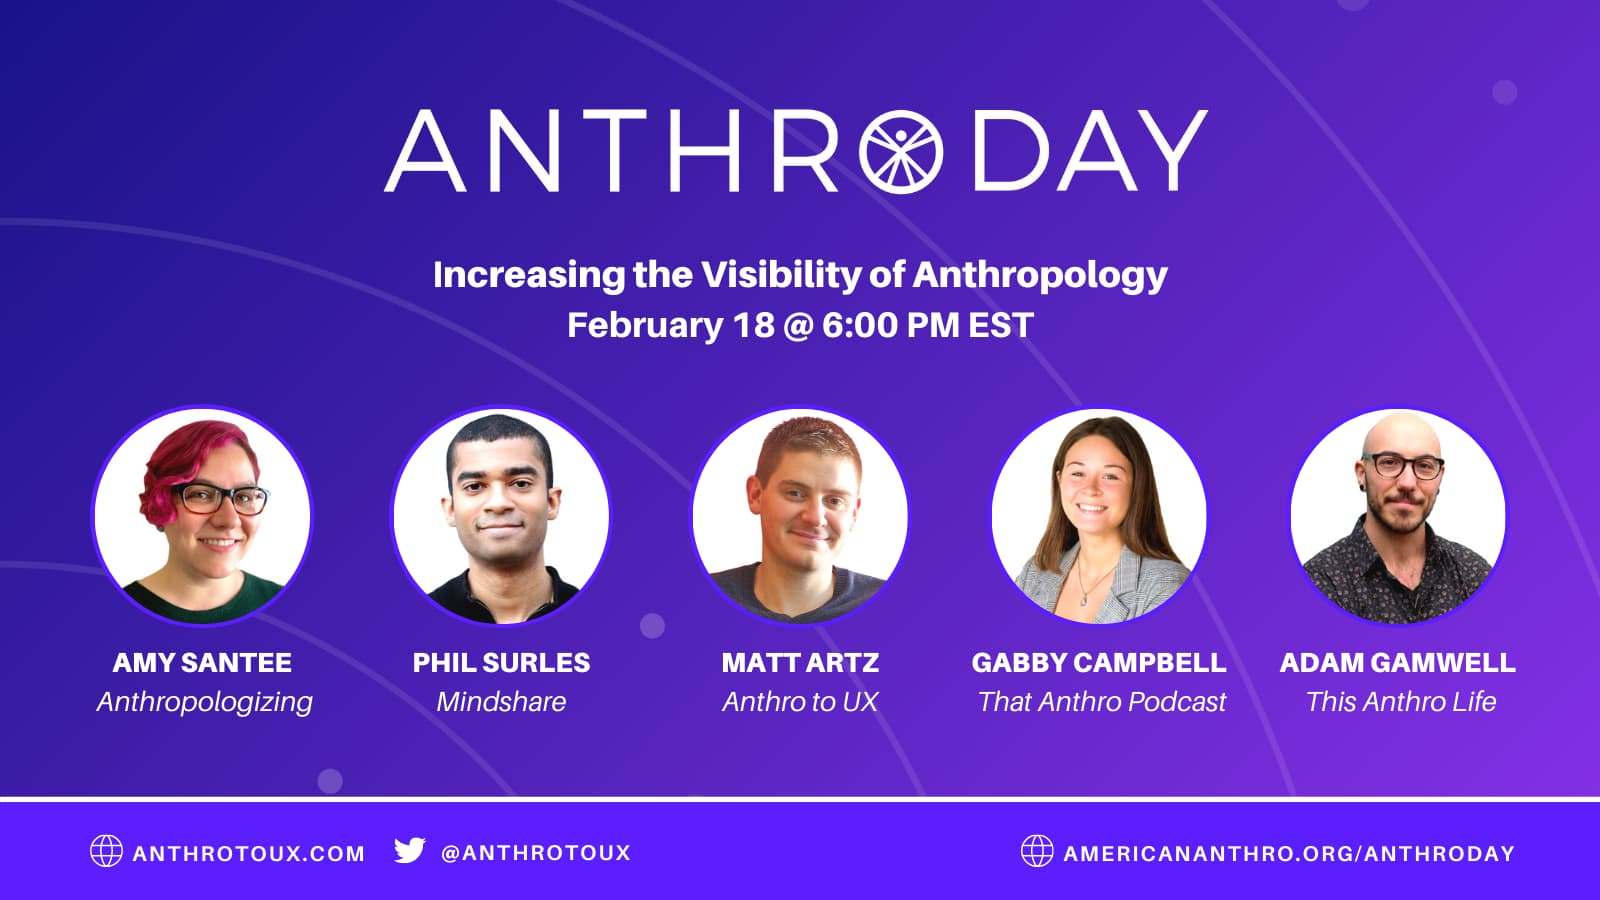 Increasing the Visibility of Anthropology